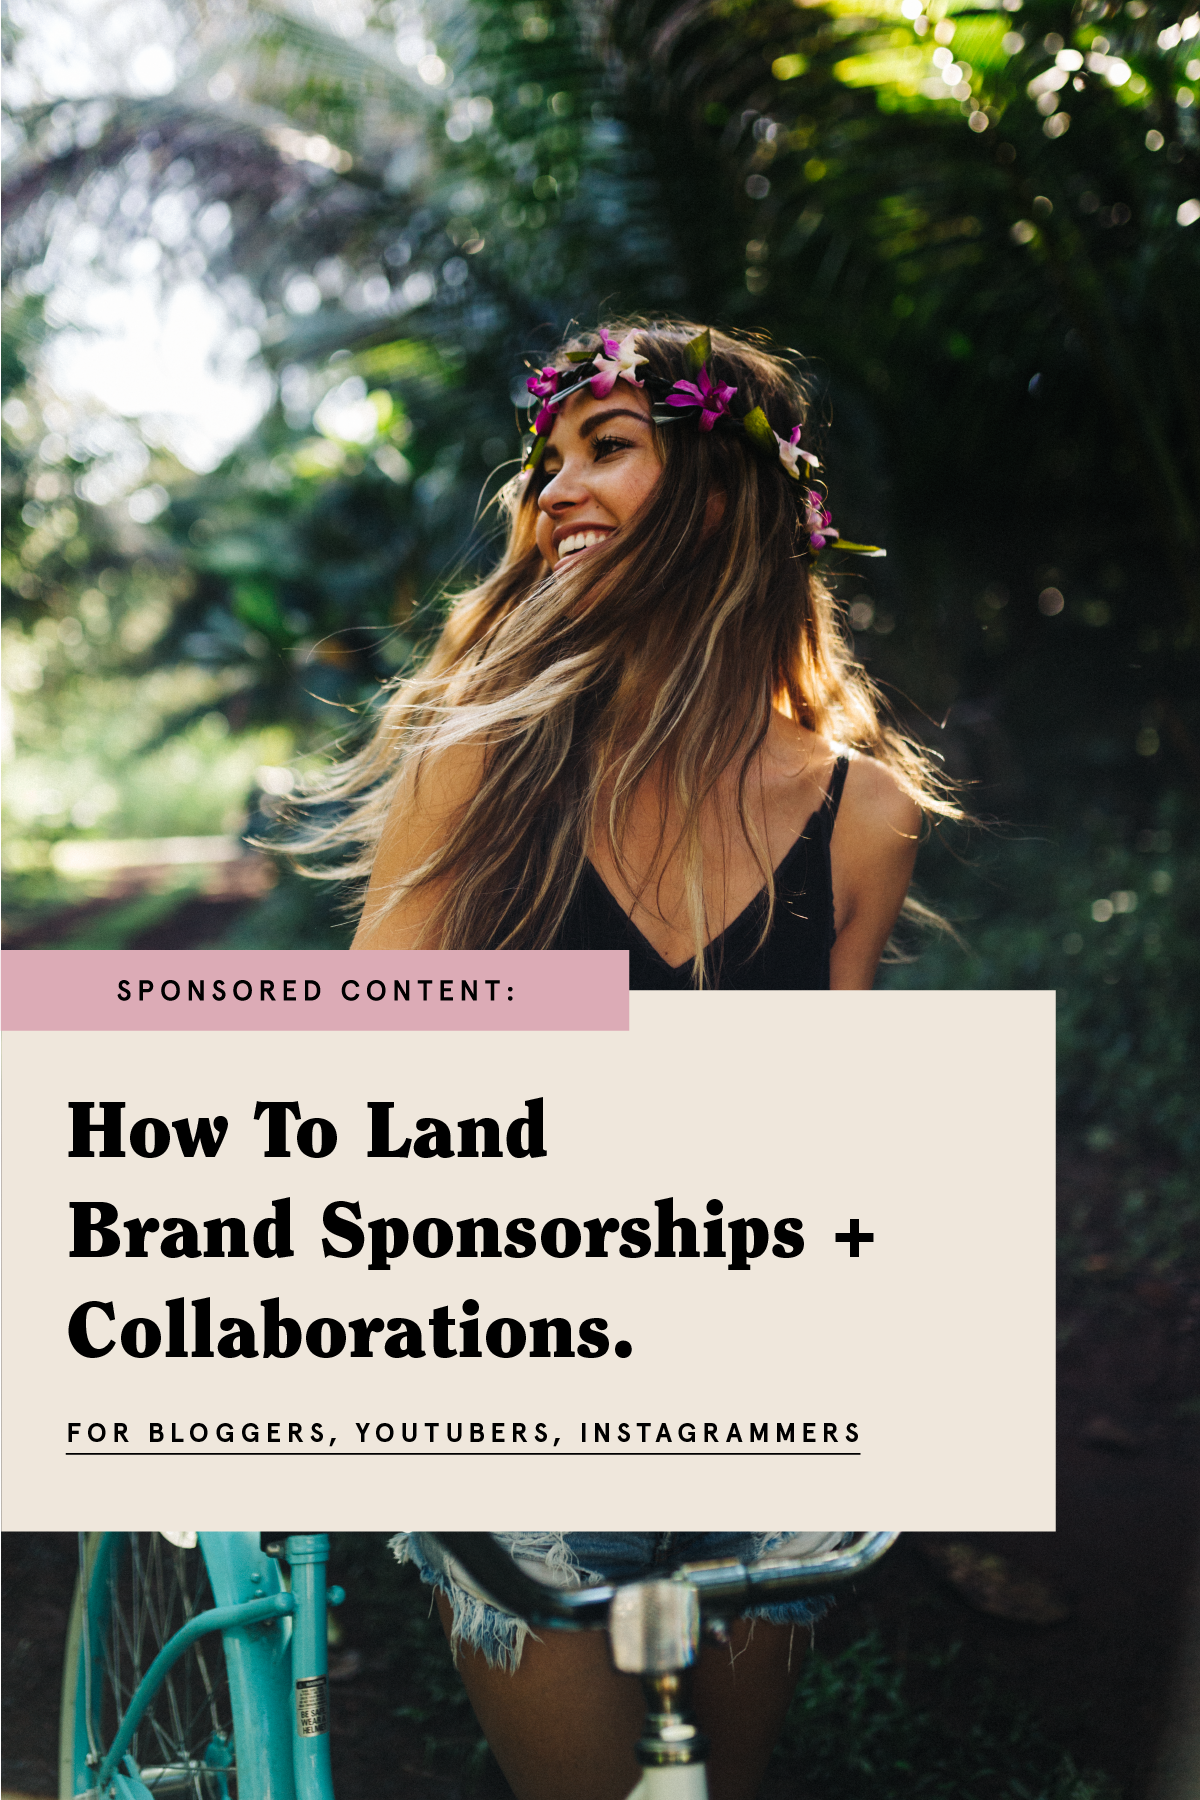 How to land brand sponsorships and collaborations for bloggers, youtubers and instagrammers